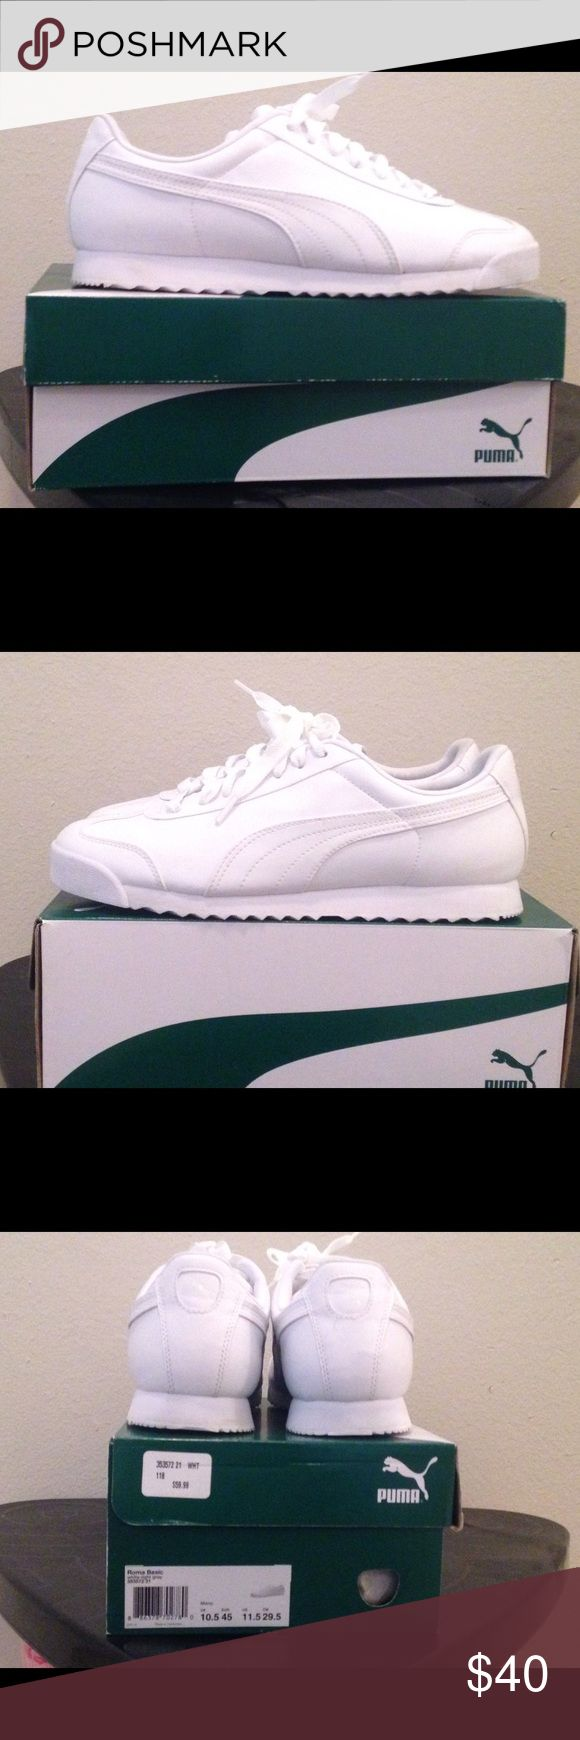 Men's Puma sneakers All white leather men's Puma Roma sneakers. Excellent condition. Puma Shoes Athletic Shoes